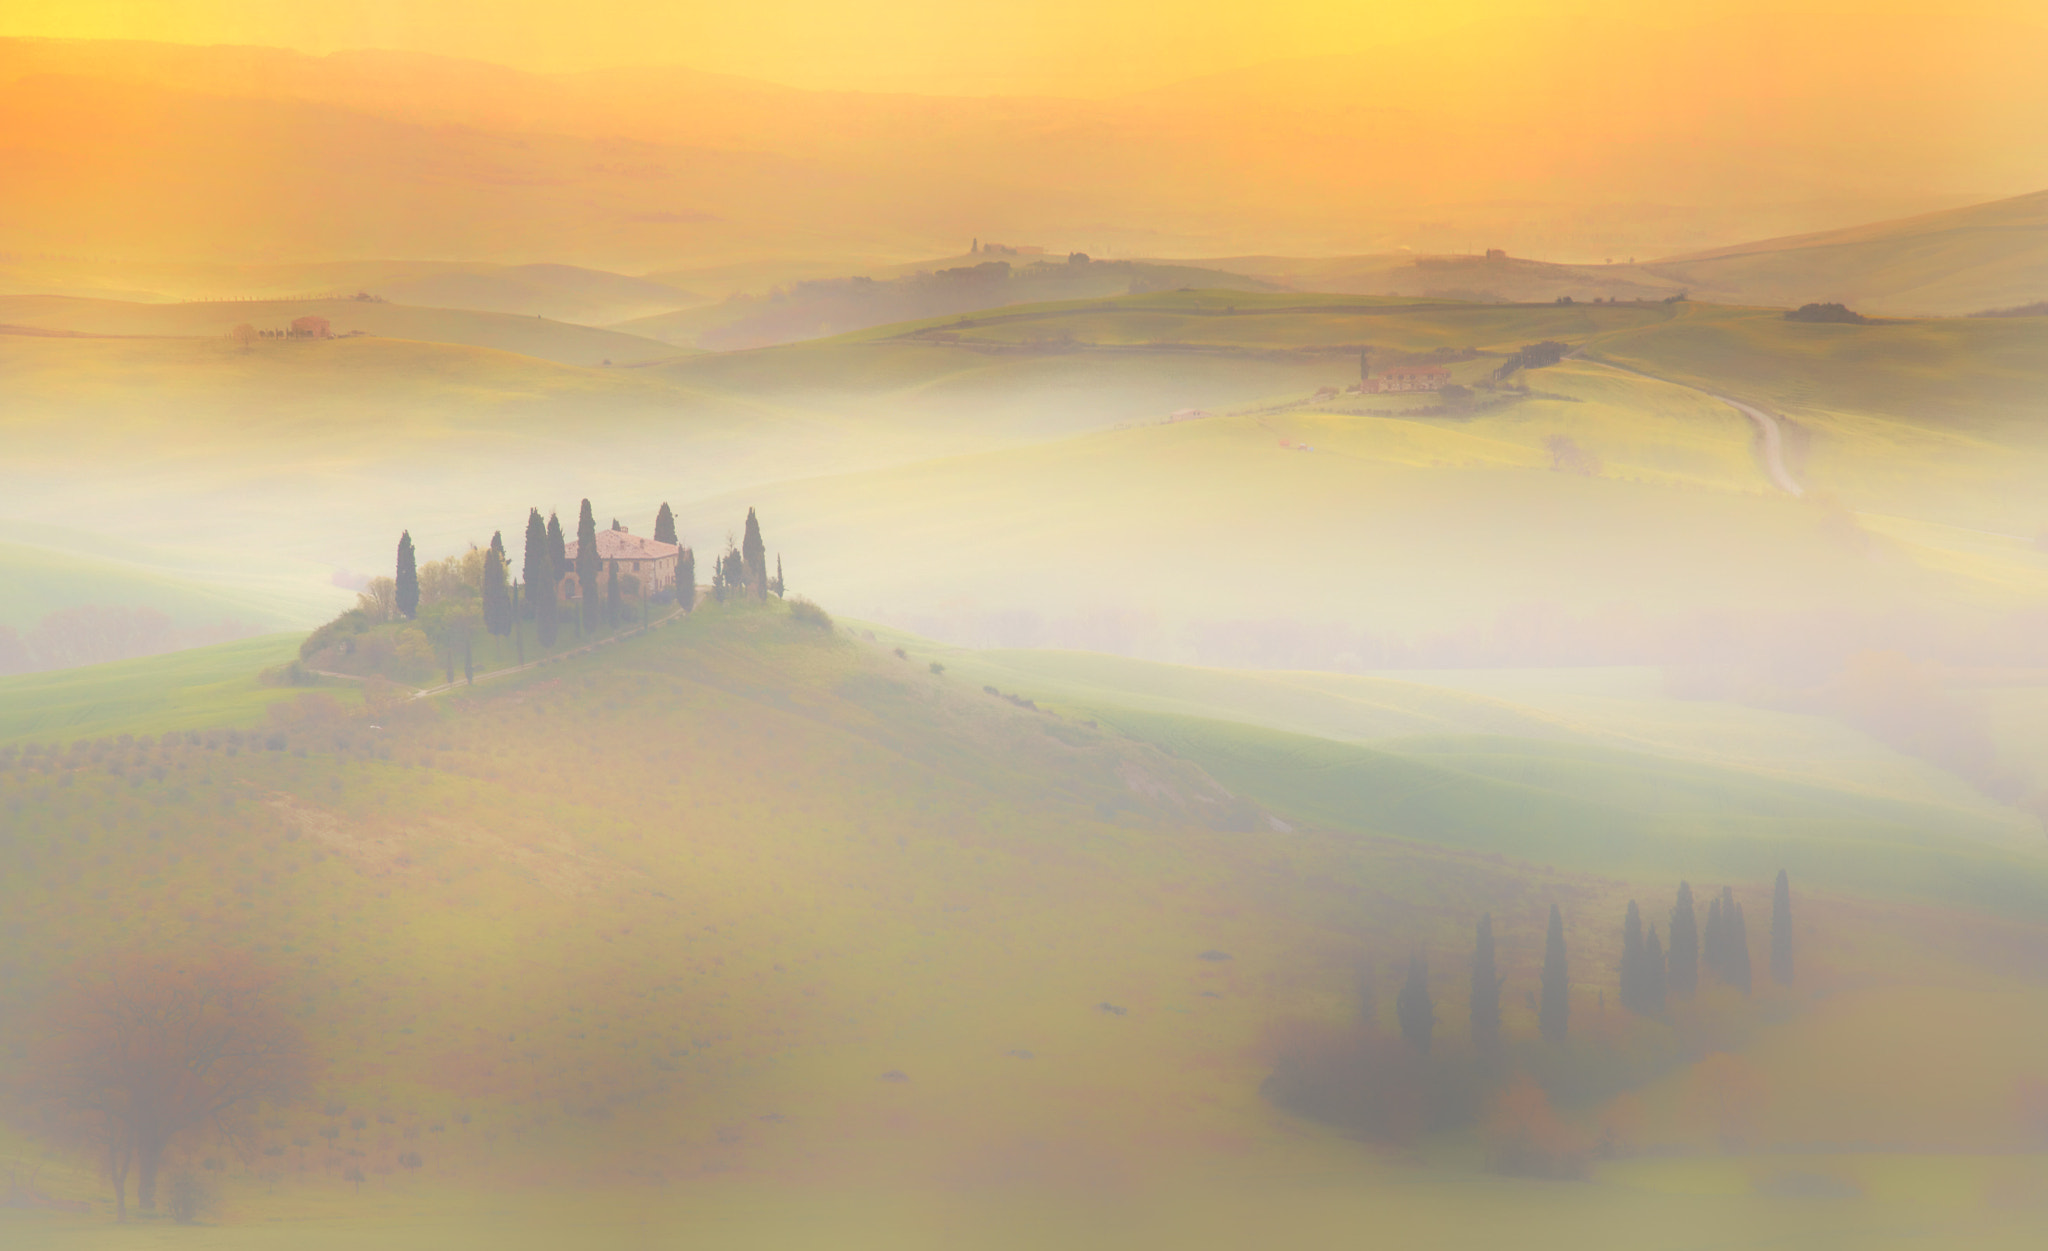 Photograph Tuscany two by Roberto Paglianti on 500px